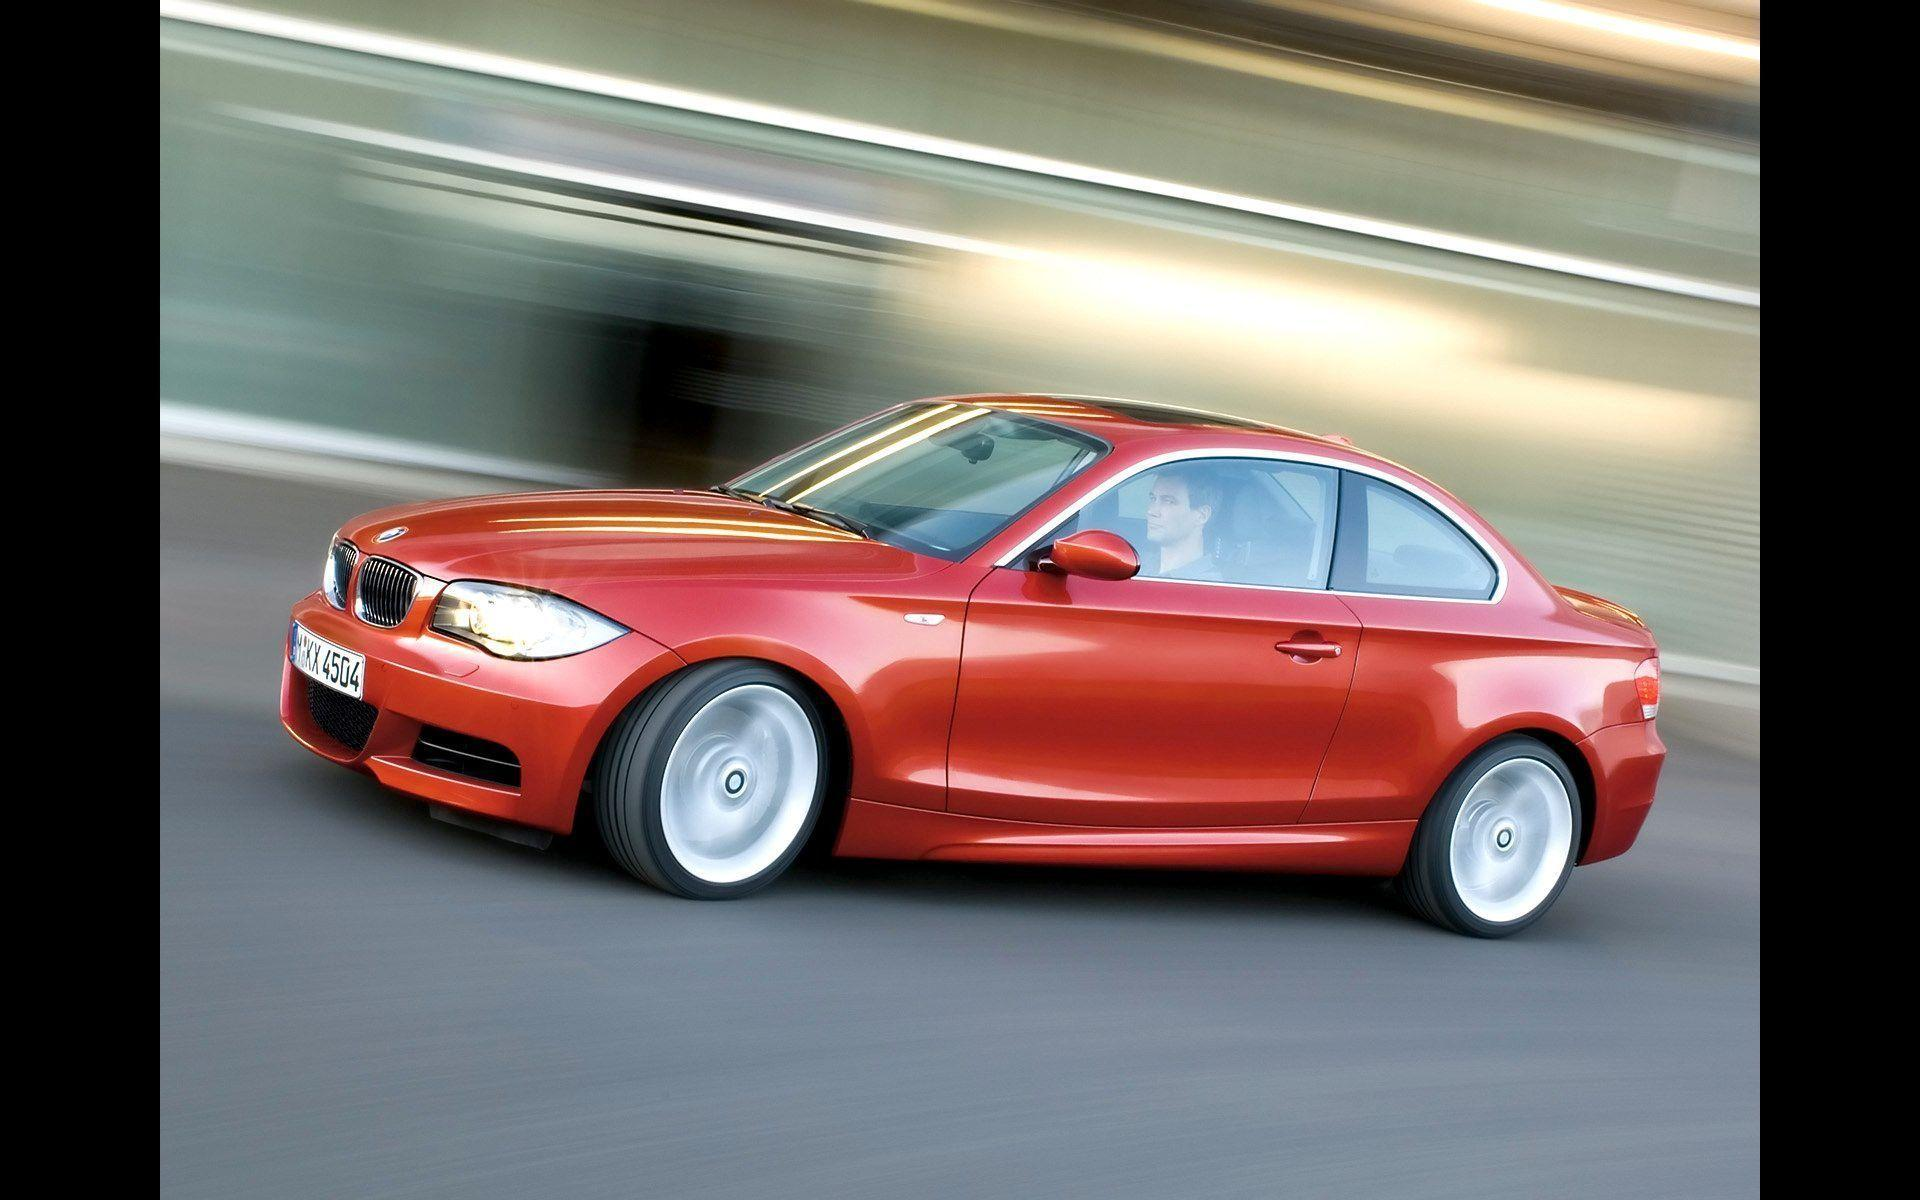 2008 BMW 1 Series Coupe Wallpaper 10 - 1920x1200